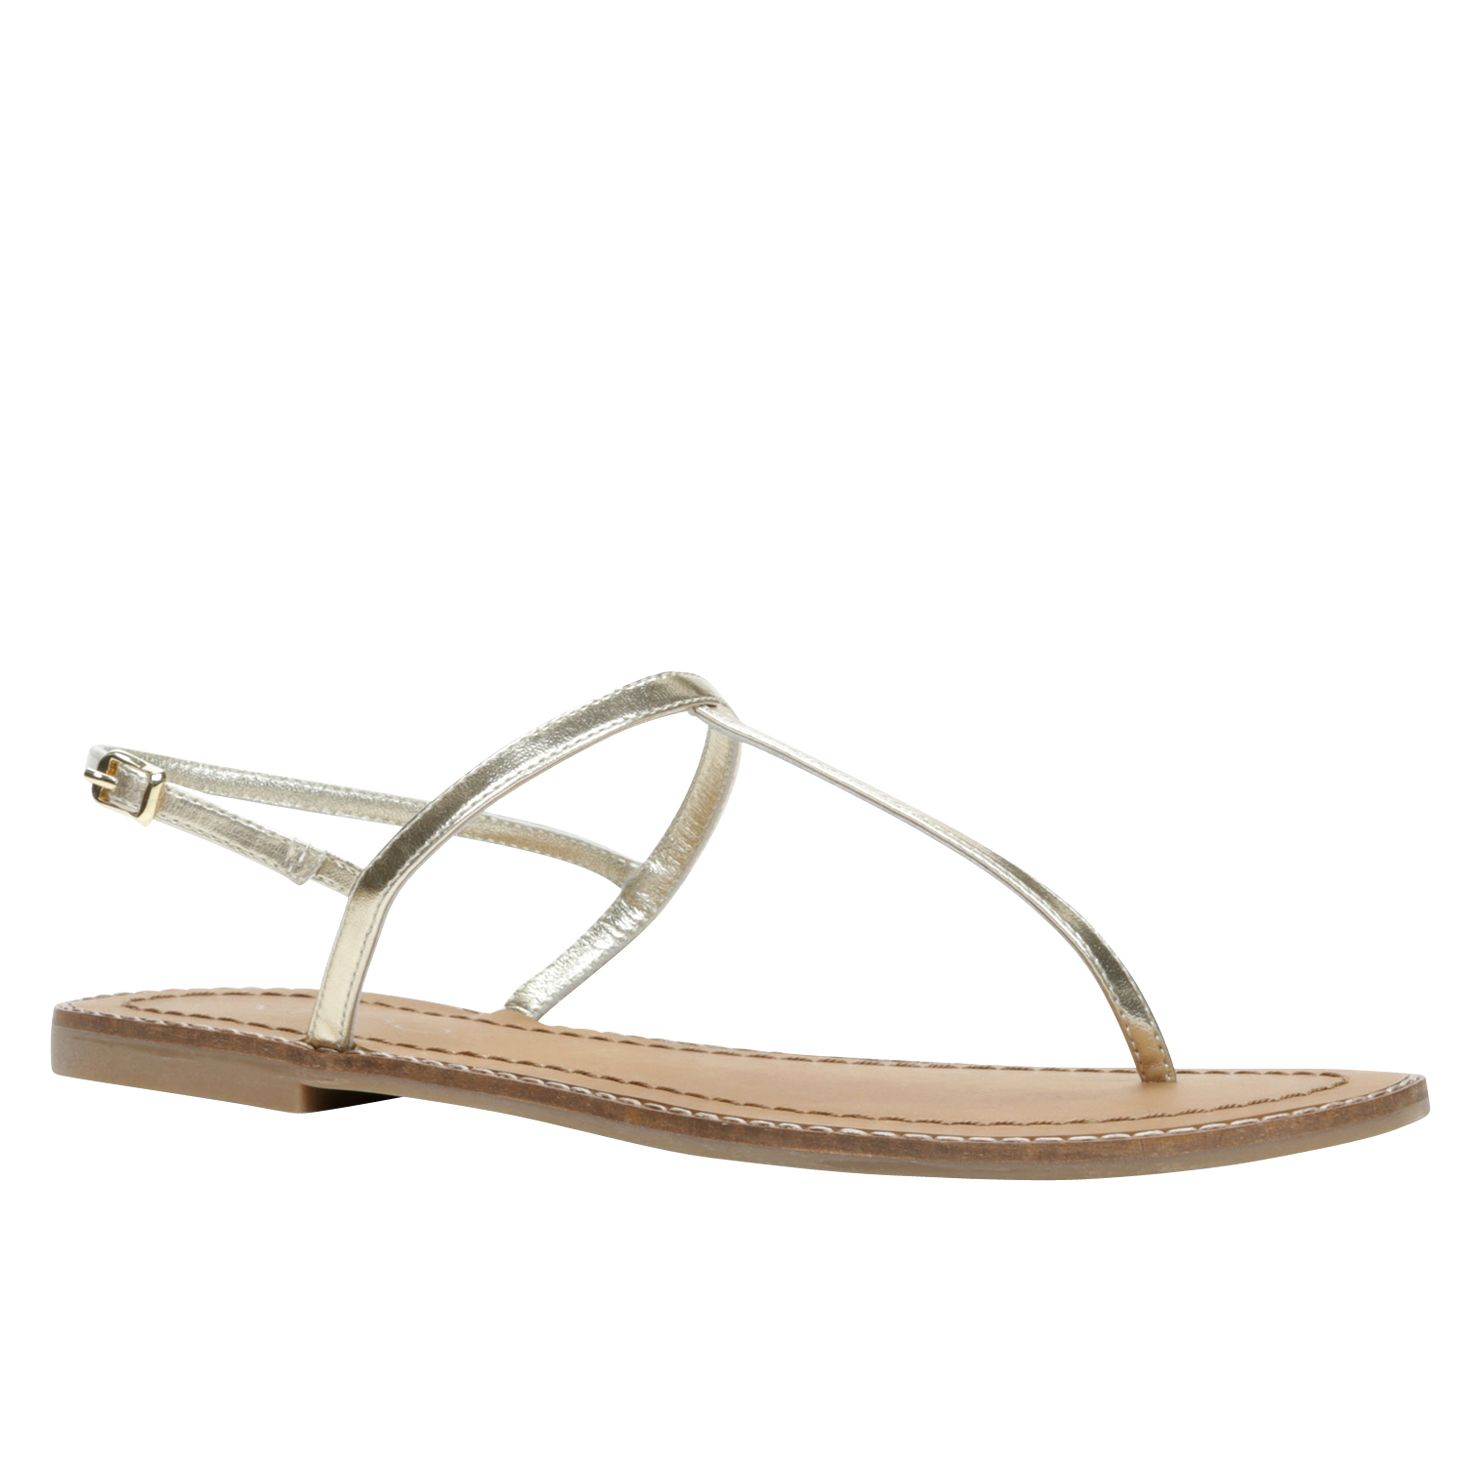 Garbagnate  flat t-bar sandals